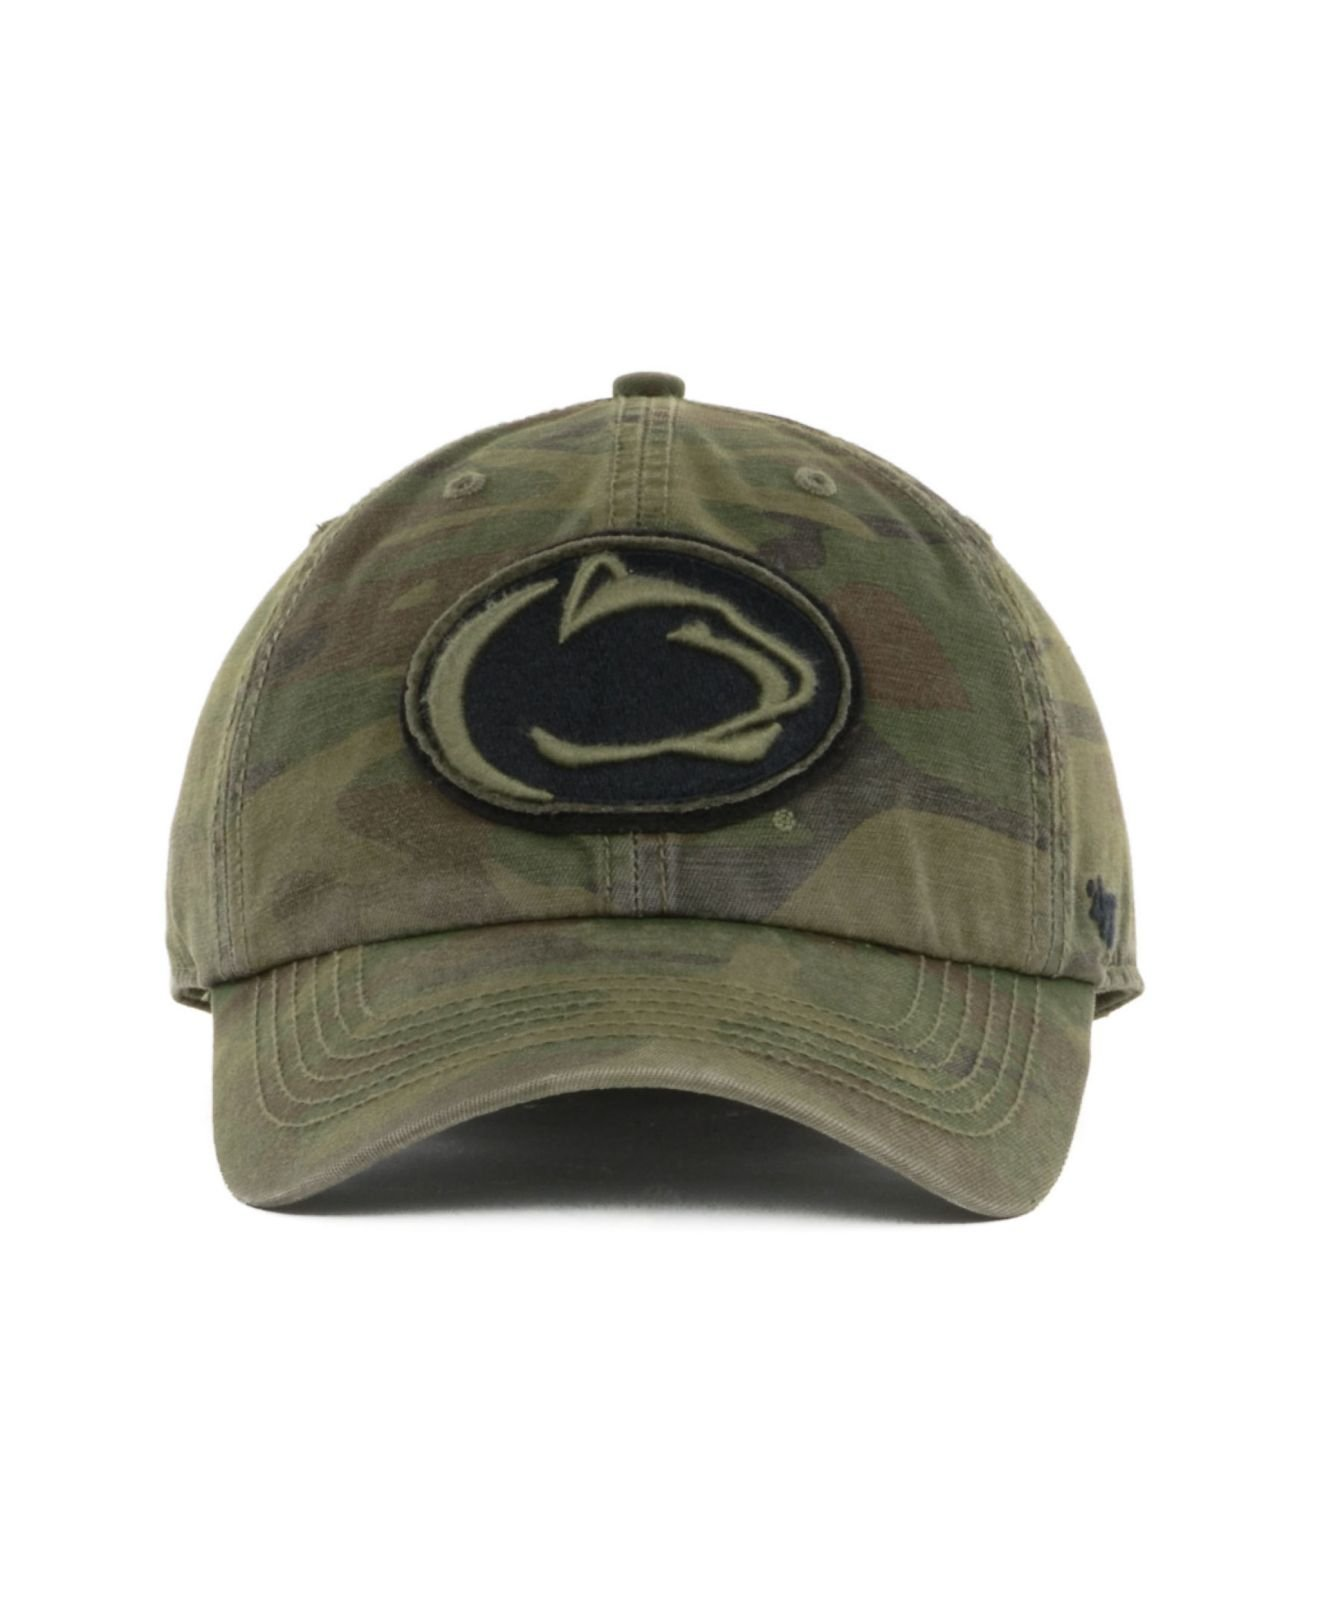 bc401cc1a05ed 47 Brand Penn State Nittany Lions Movement Franchise Cap in Green ...